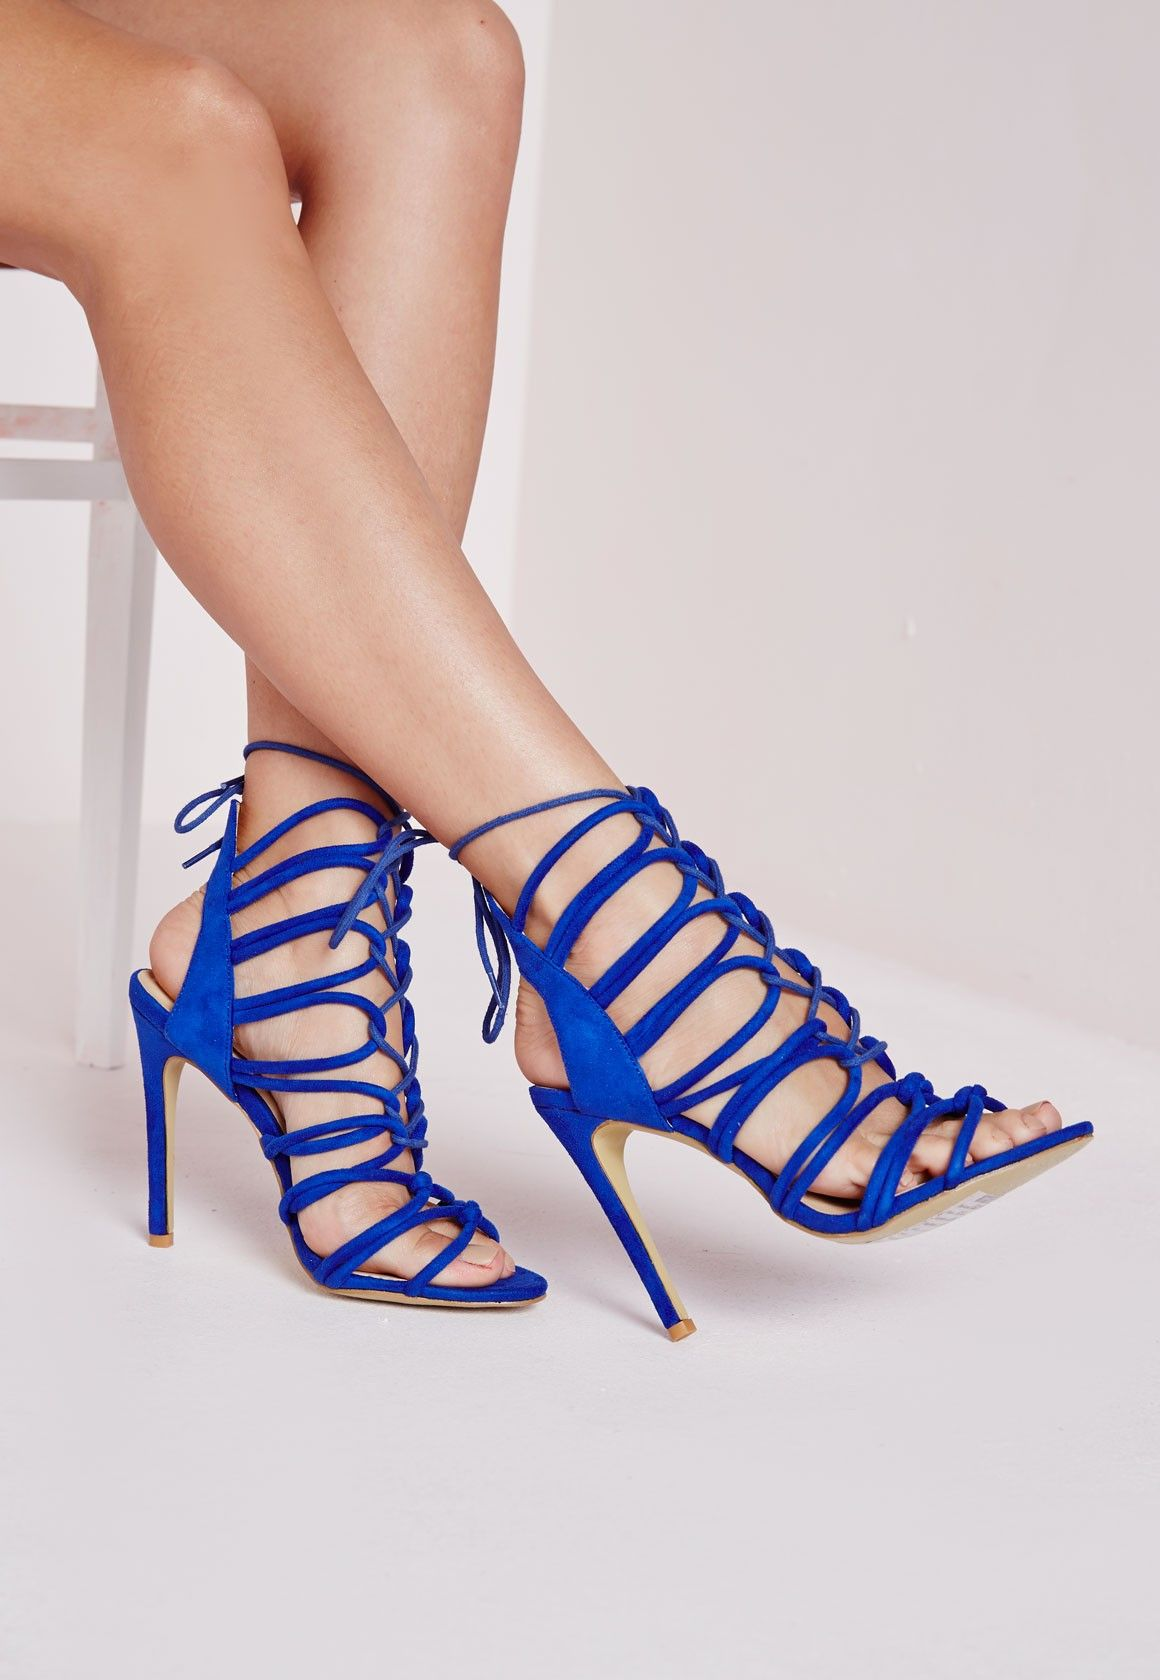 Cobalt Blue High Heel Shoes | Shoes | Pinterest | Cobalt